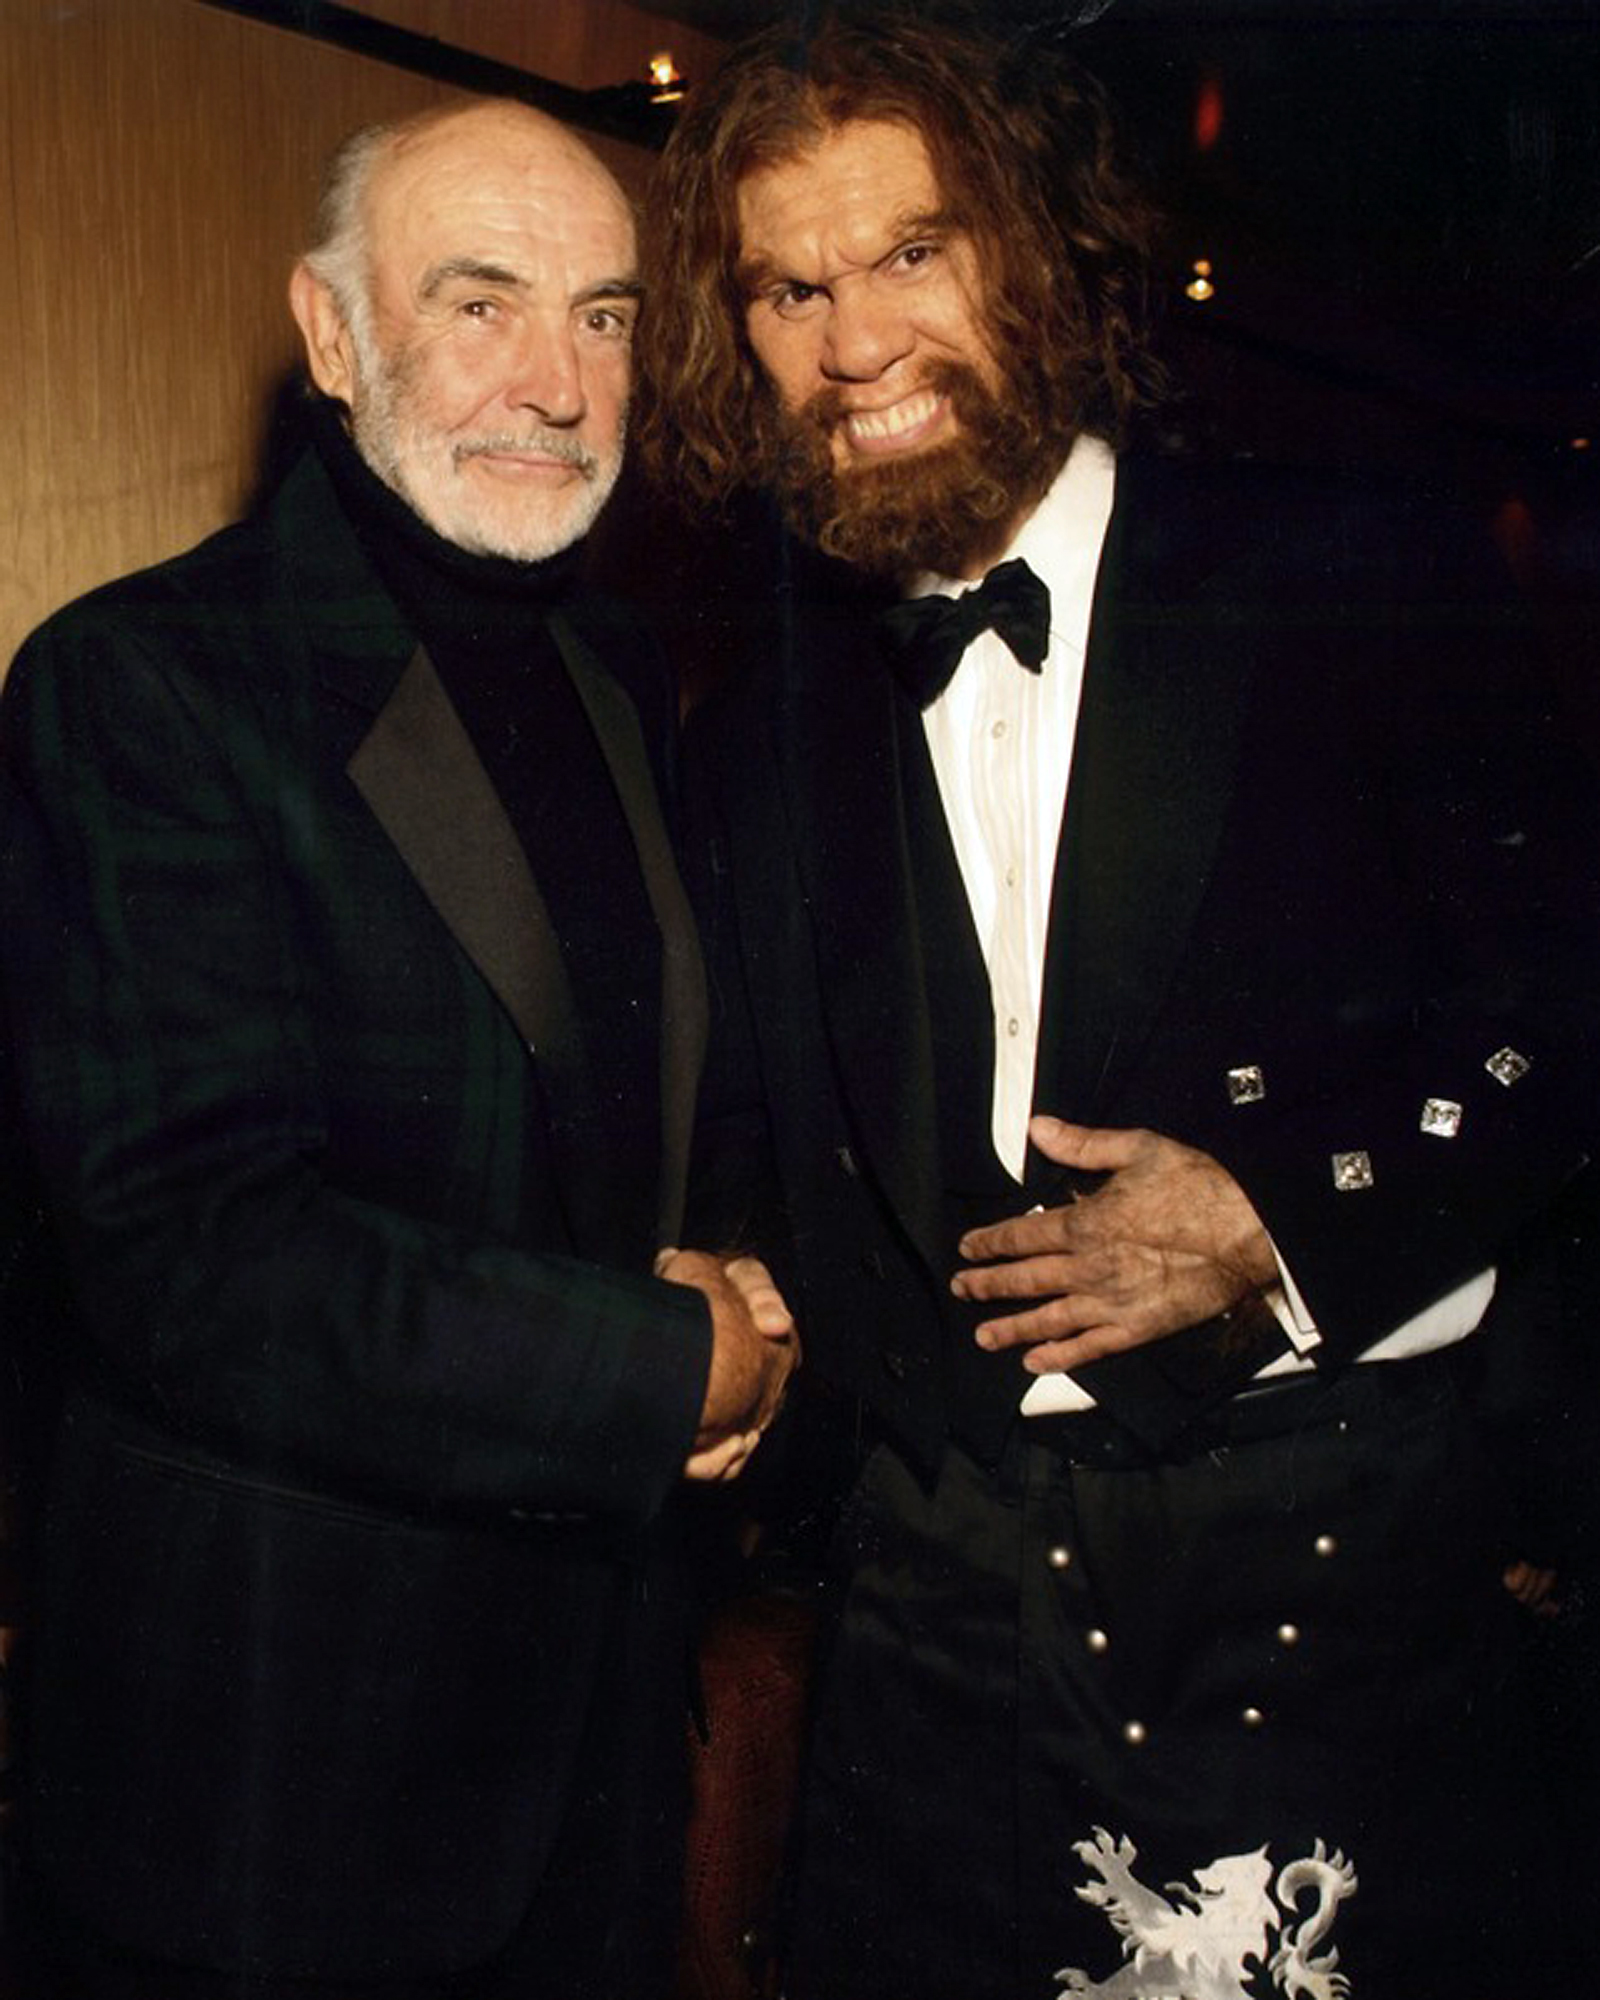 With Sean Connery @ Scottish Charity event for GEICO